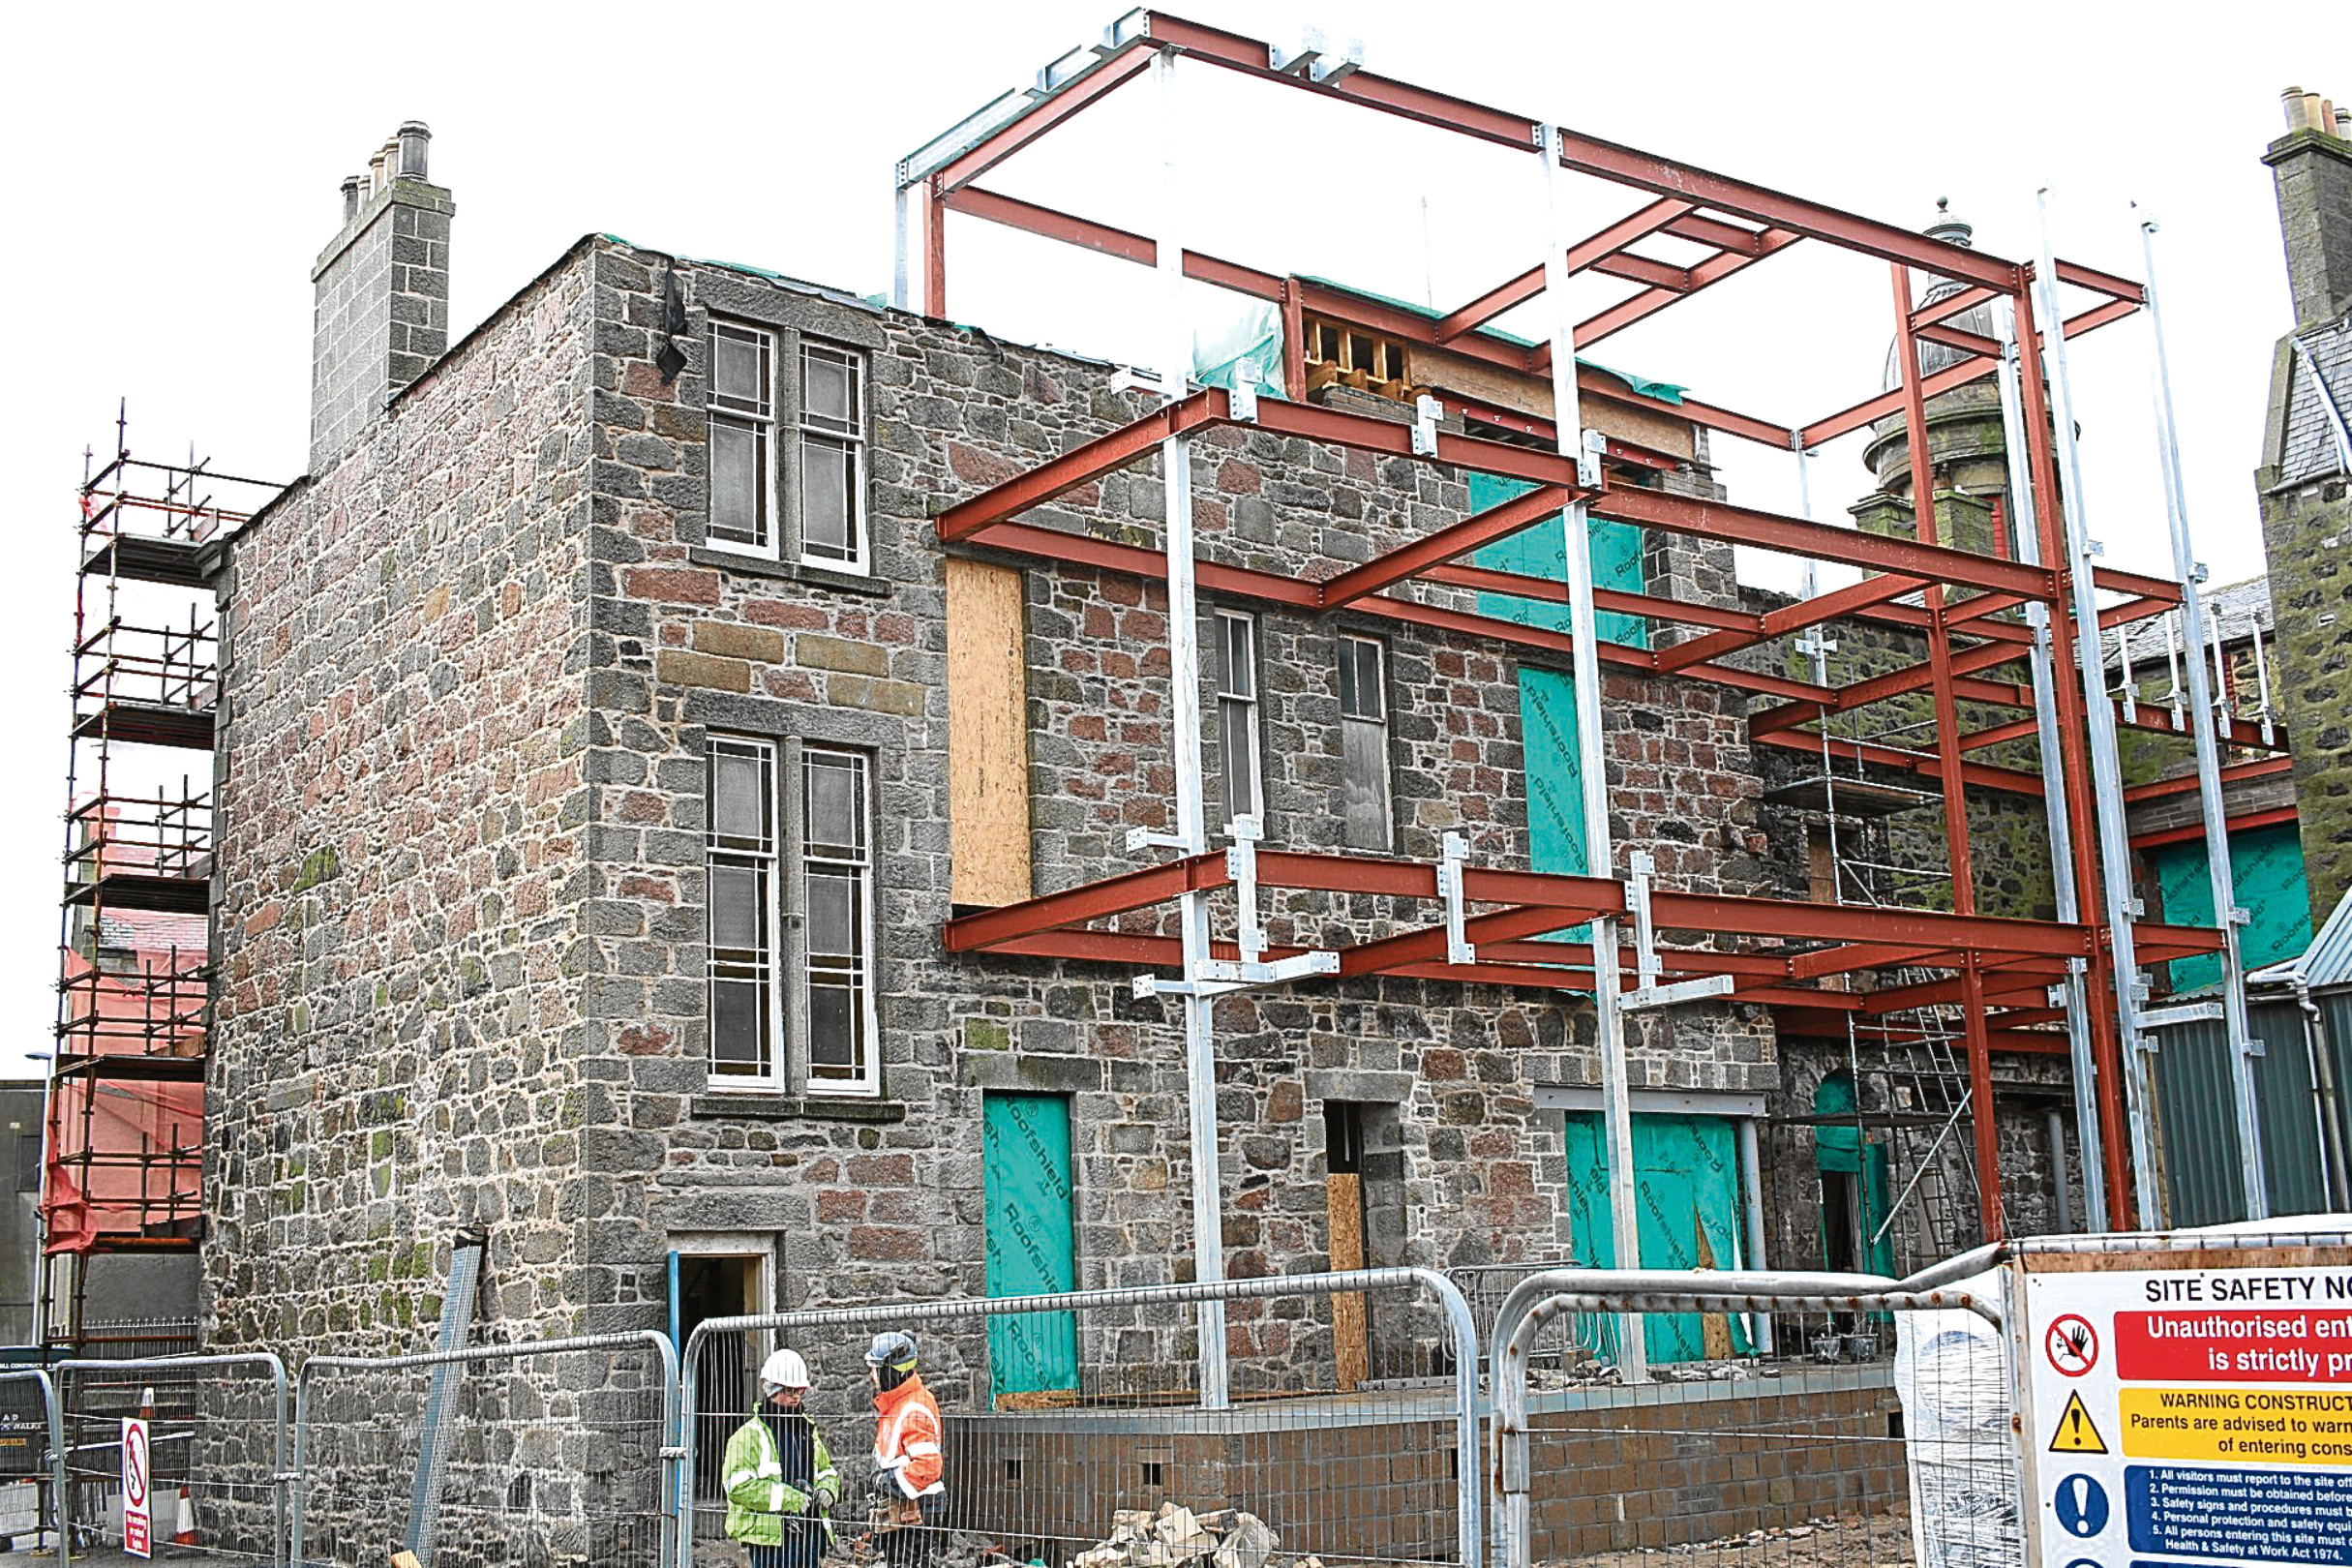 Work has started on an extension to an old police station in Fraserburgh as part of a regeneration project.